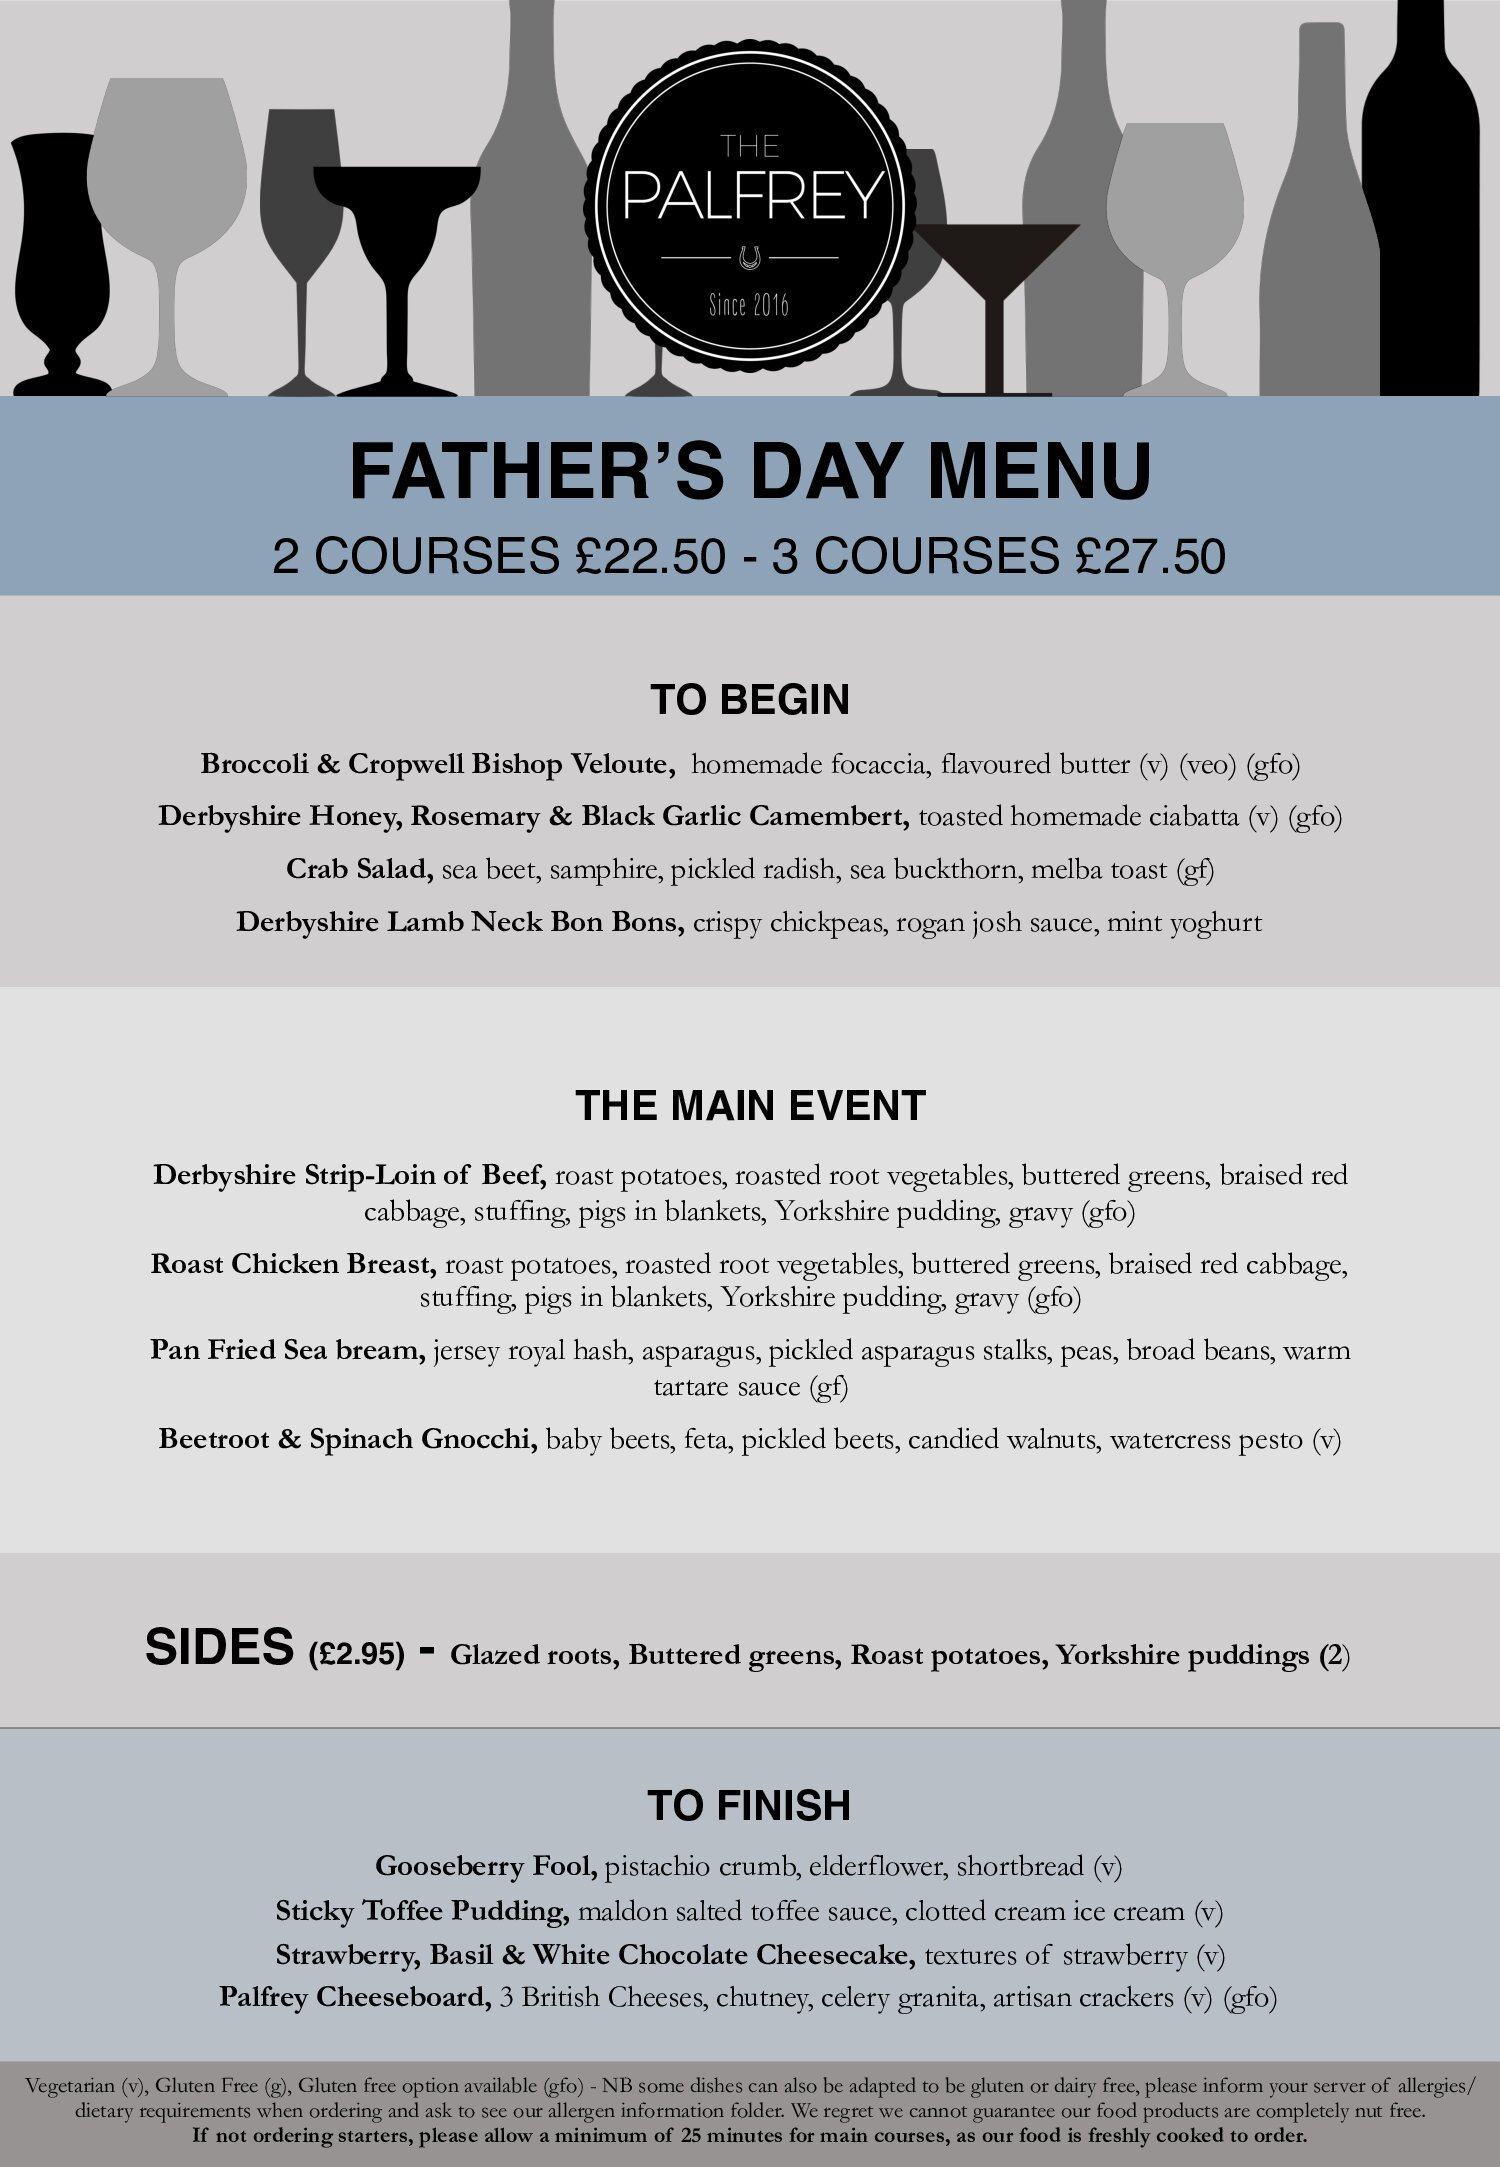 Palfrey Menu Layout - Father's Day 2020_1-1